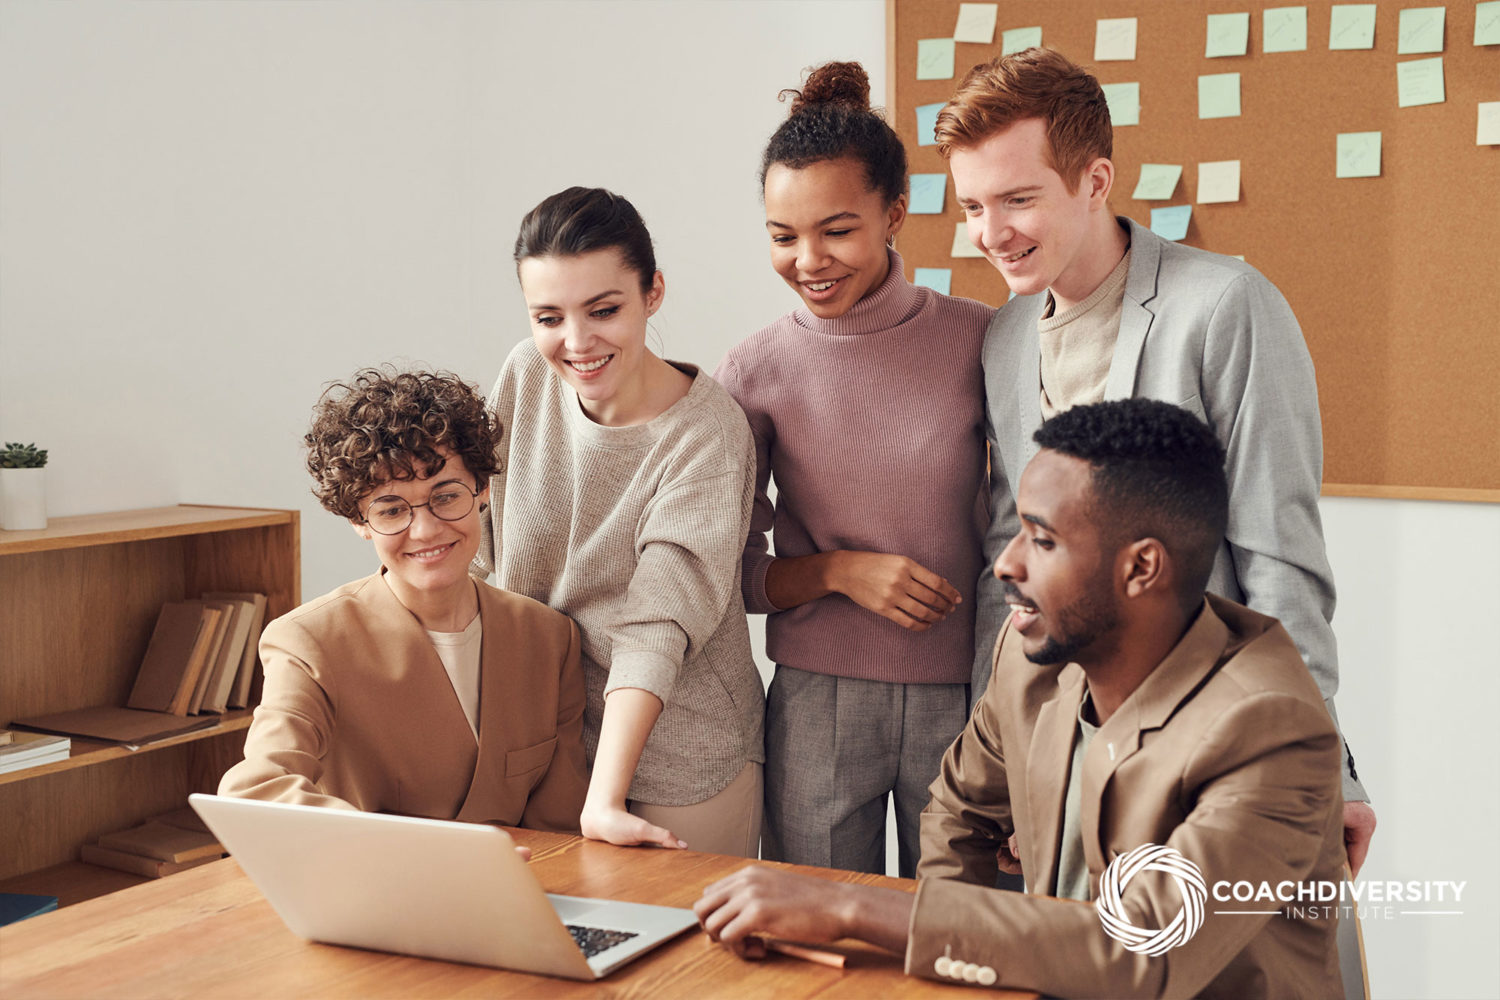 The Difference Between Employee Experience And Employee Engagement